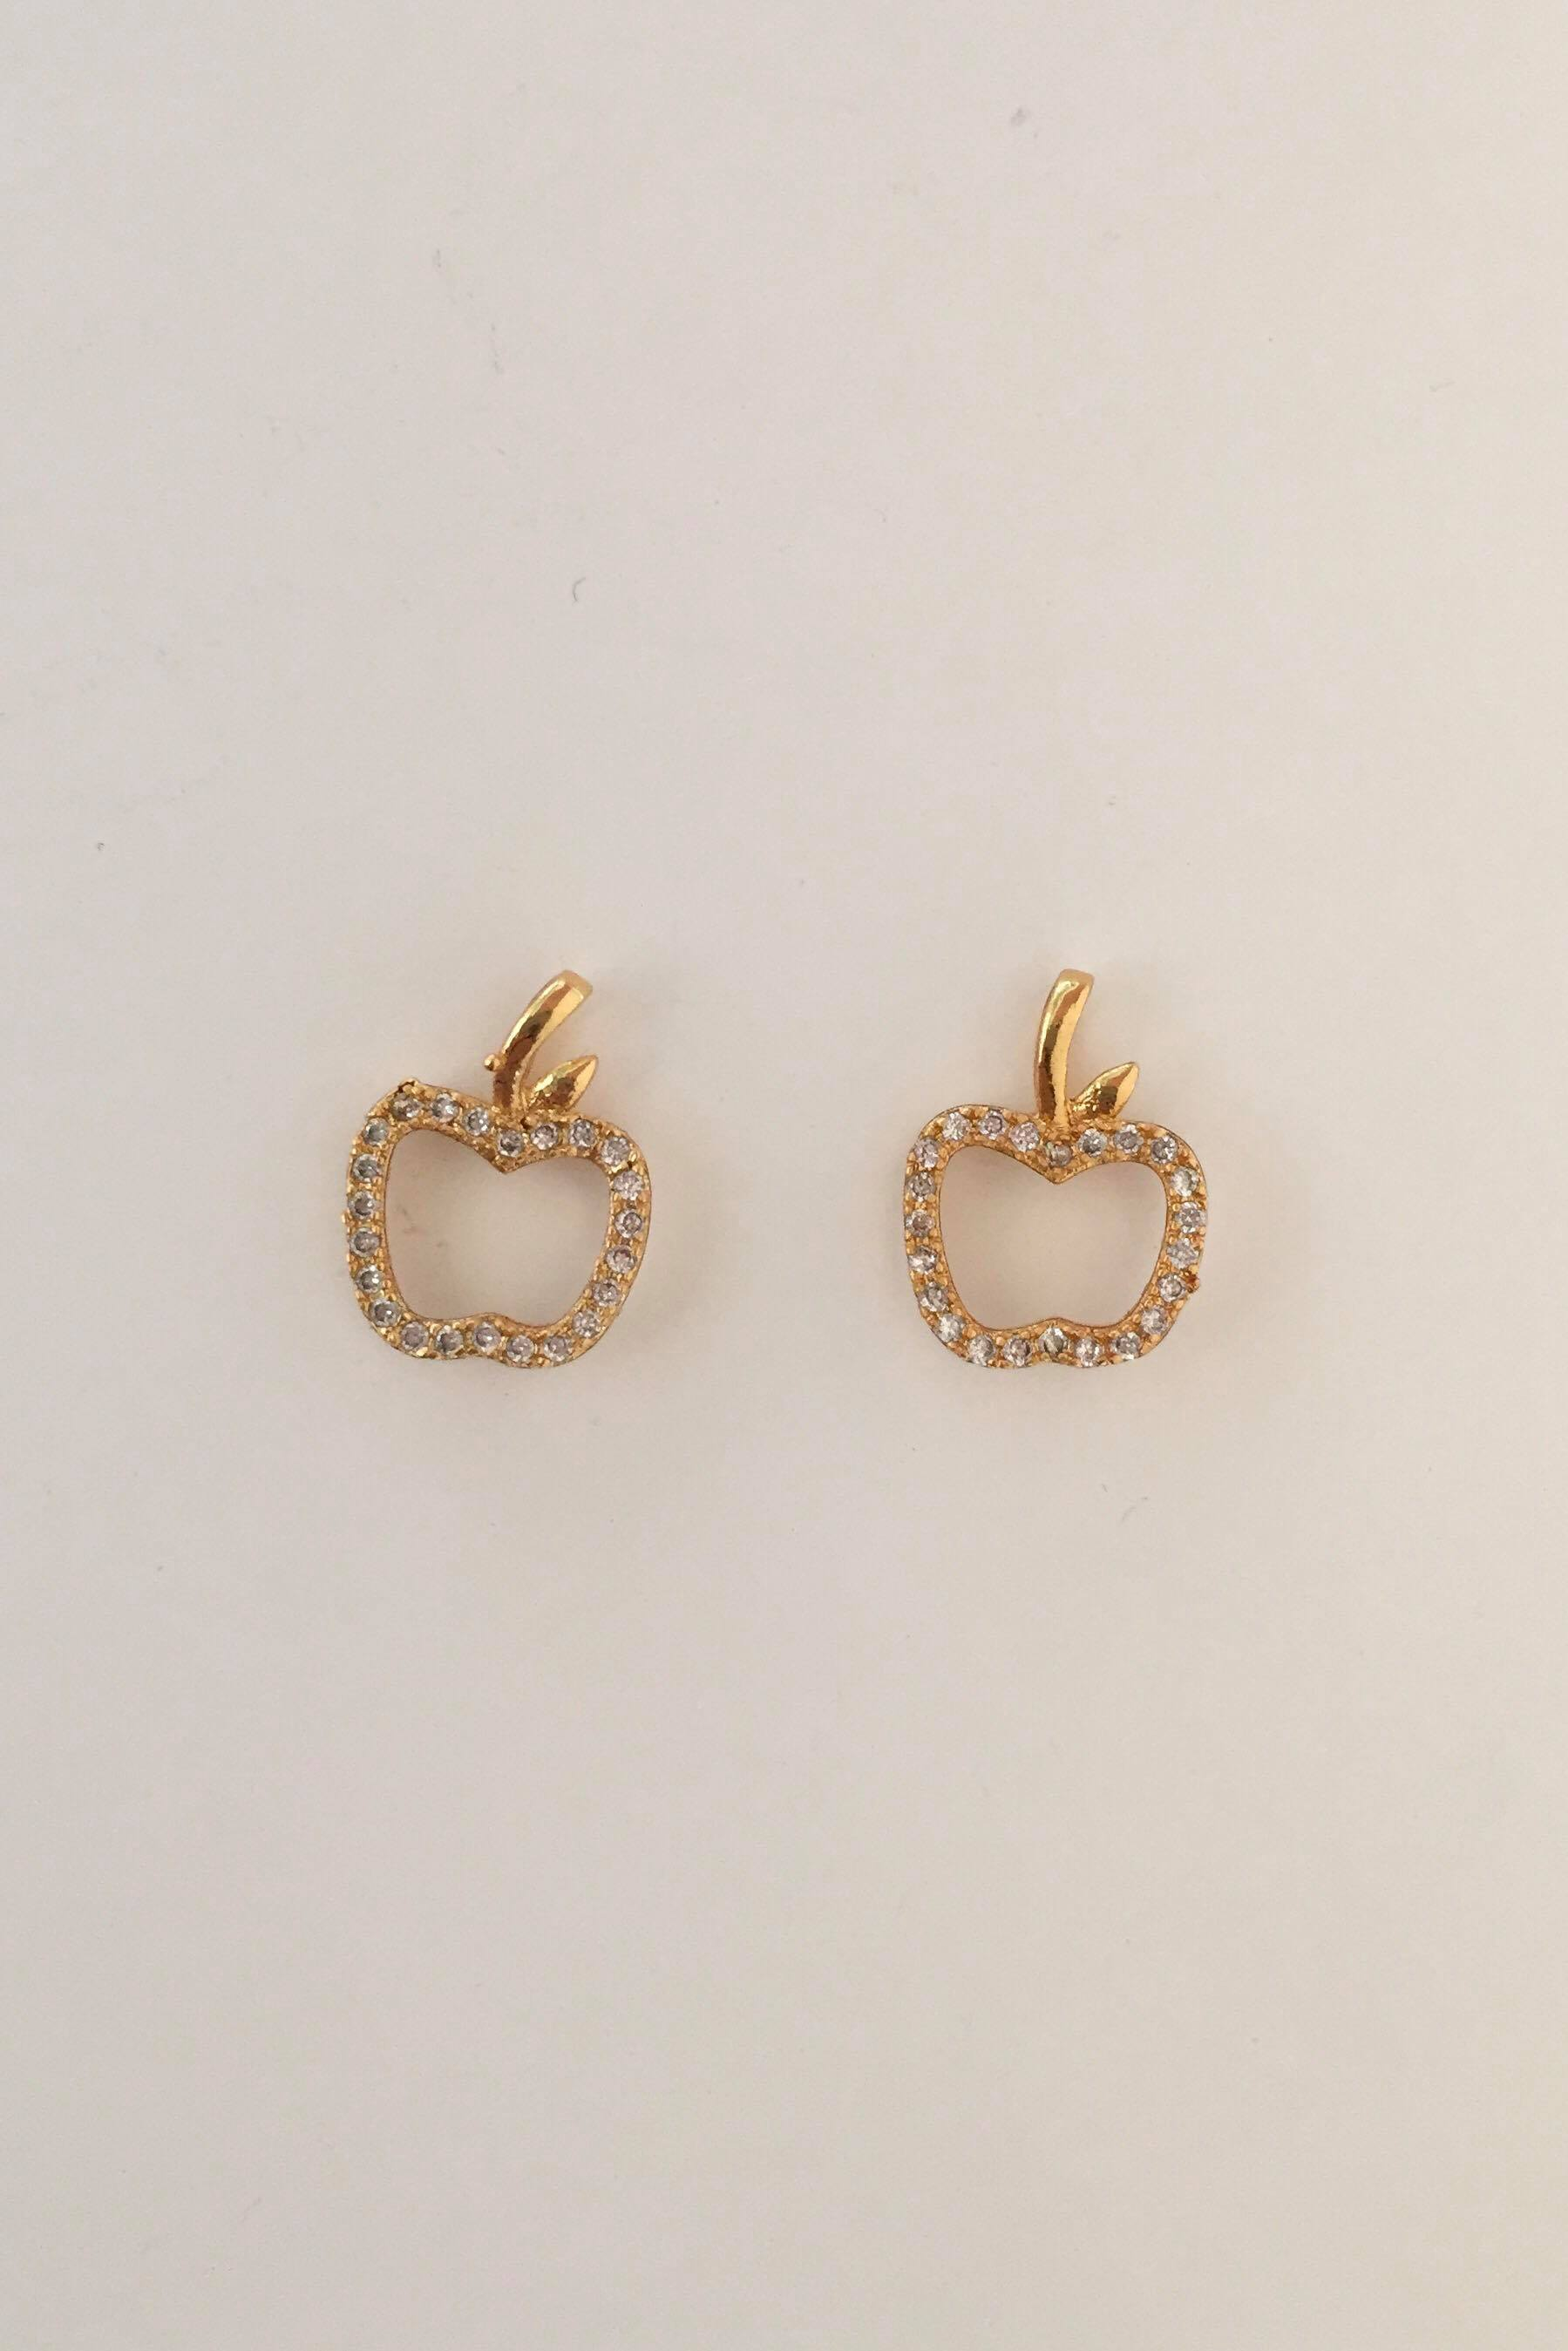 RHINESTONE APPLE STUDS